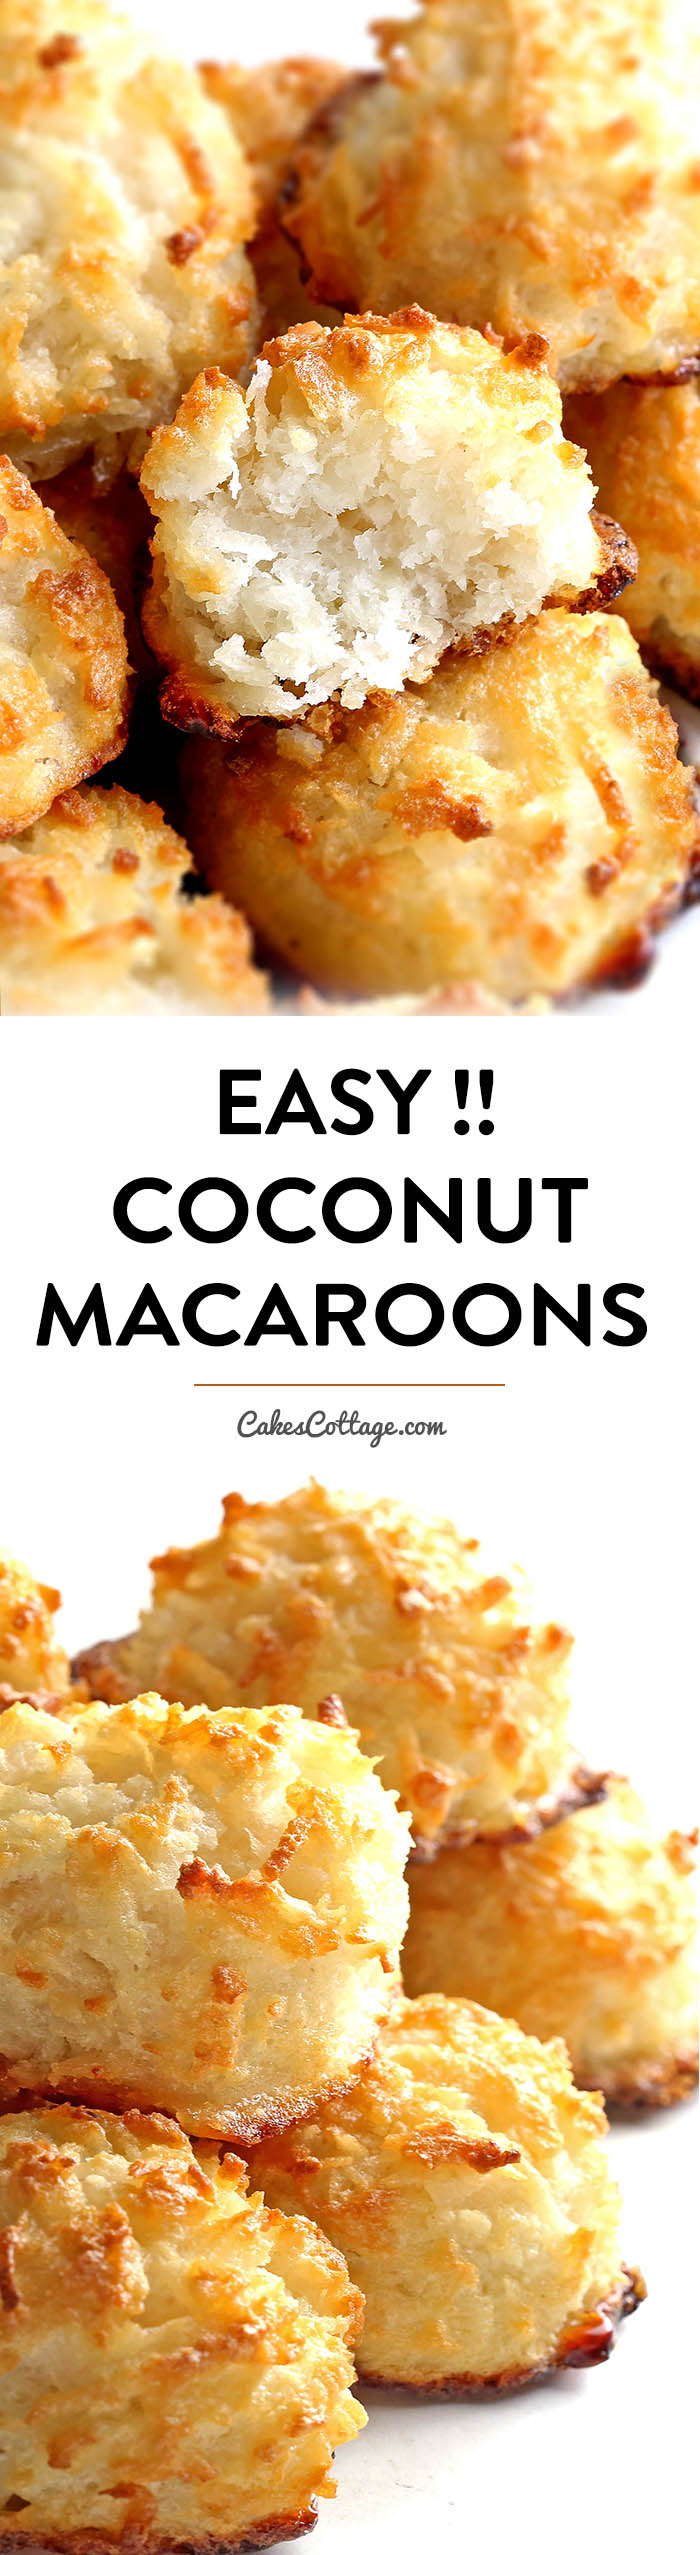 "Light and chewy 3-ingredient Coconut Macaroons are the easiest cookies of all time. Dipping them in chocolate is ""optional"" but really, why wouldn't you?"